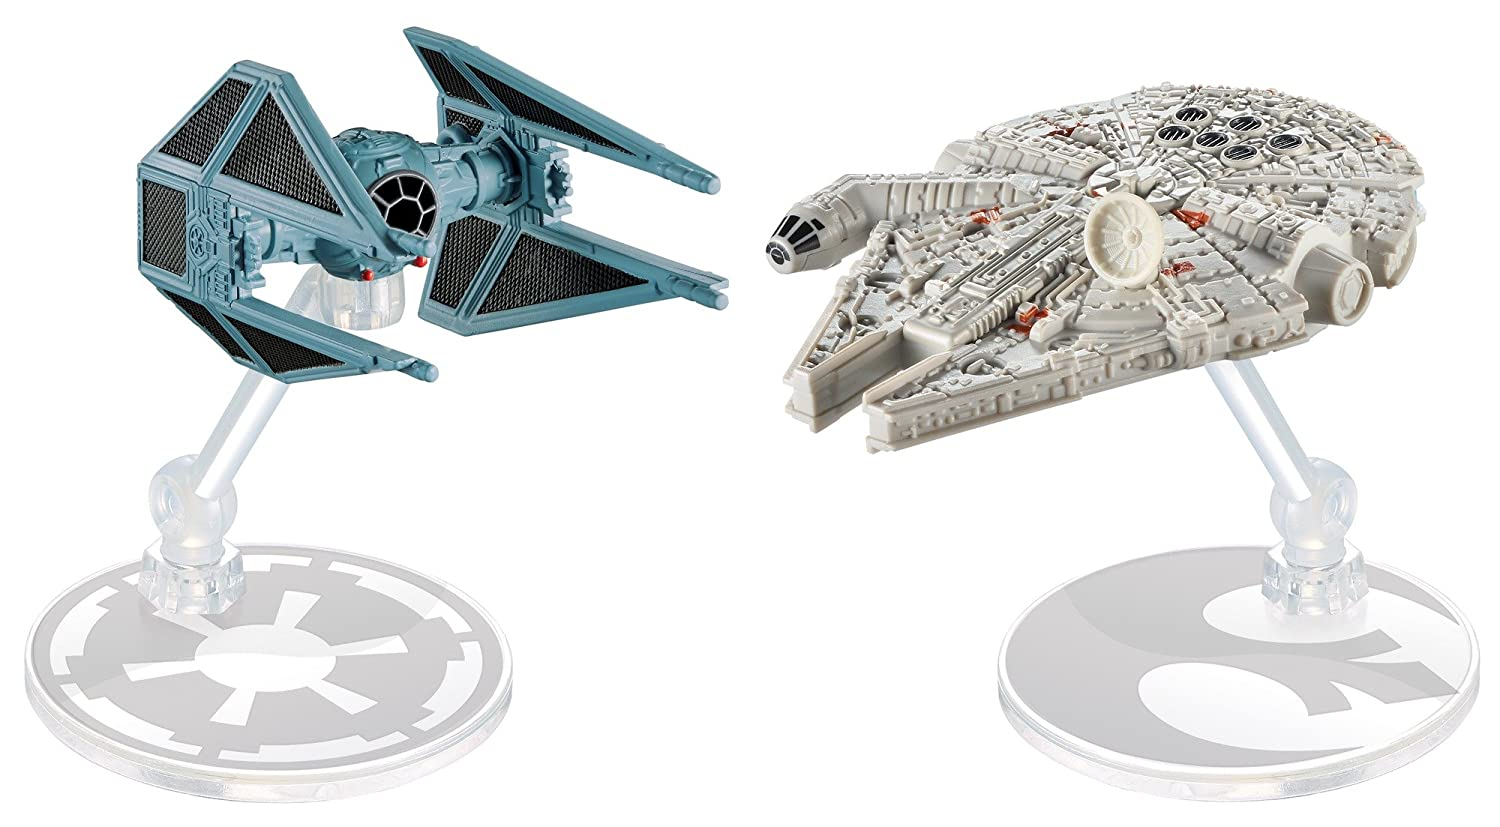 Hot Wheels Star Wars Starship Millennium Falcon vs Tie Bomber (2 Pack) Mattel DML96